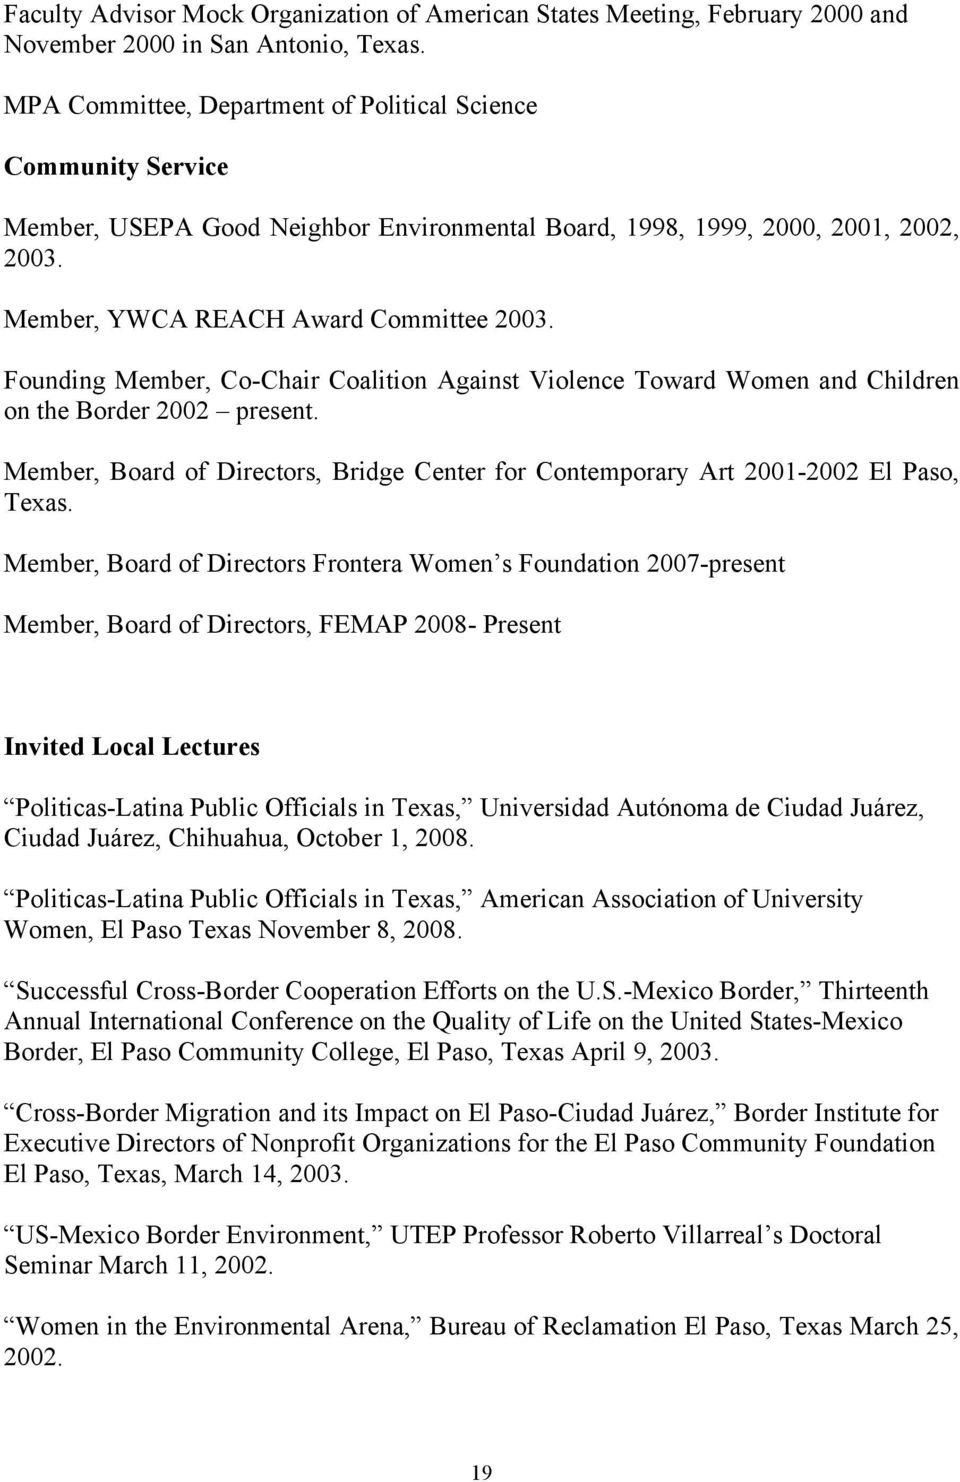 Founding Member, Co-Chair Coalition Against Violence Toward Women and Children on the Border 2002 present. Member, Board of Directors, Bridge Center for Contemporary Art 2001-2002 El Paso, Texas.